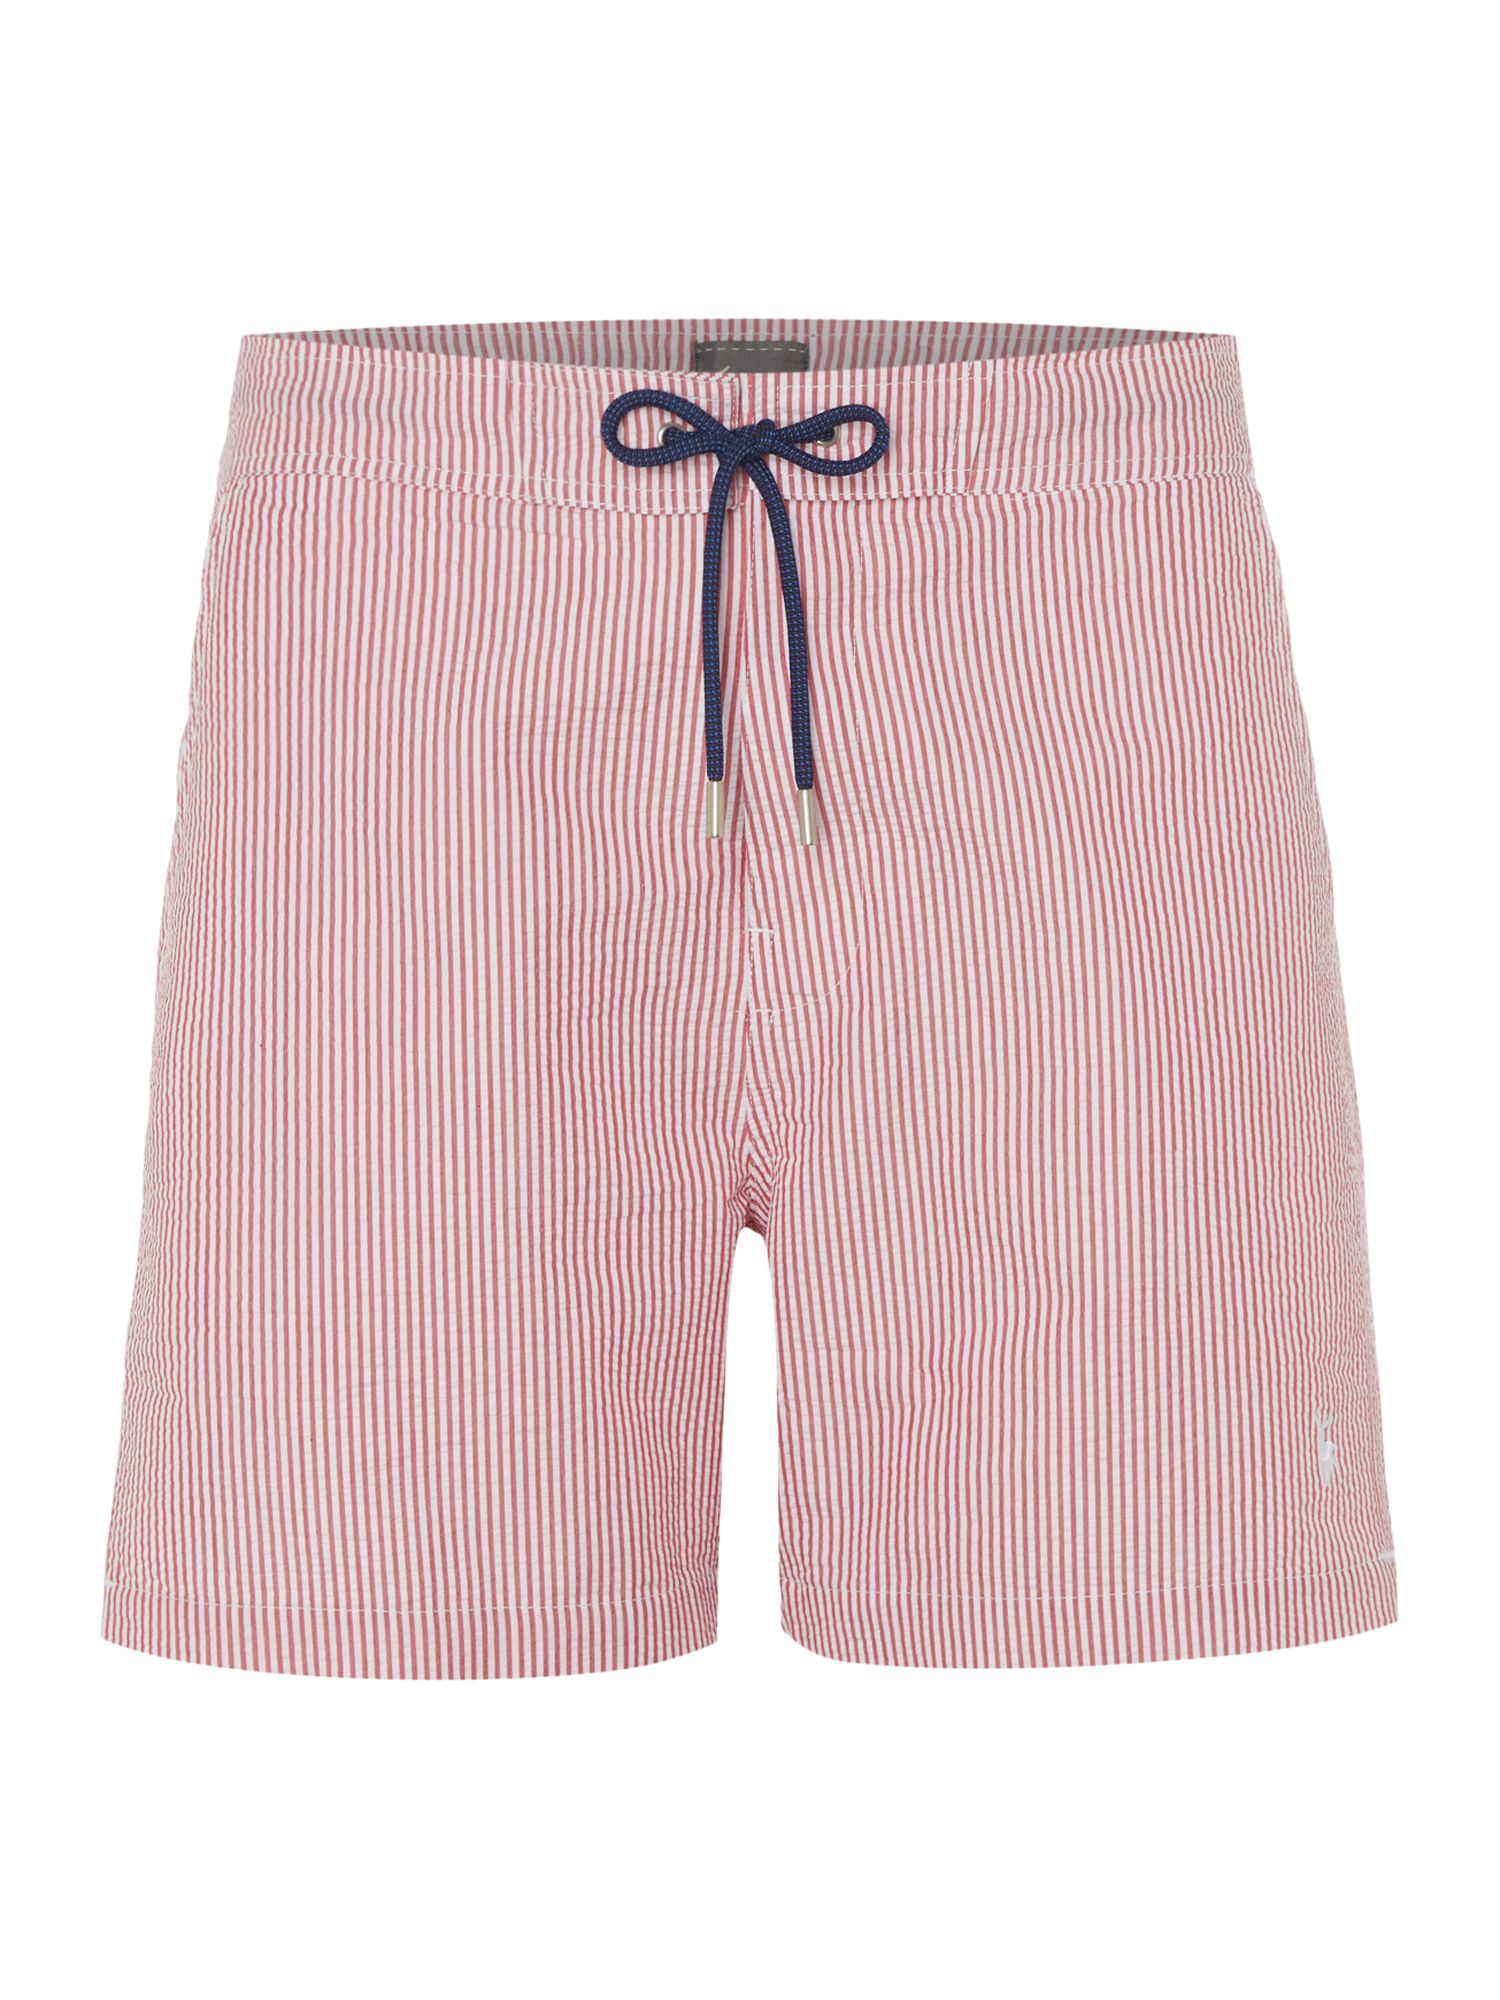 Men's Linea Seersucker Stripe Swim Short, Red